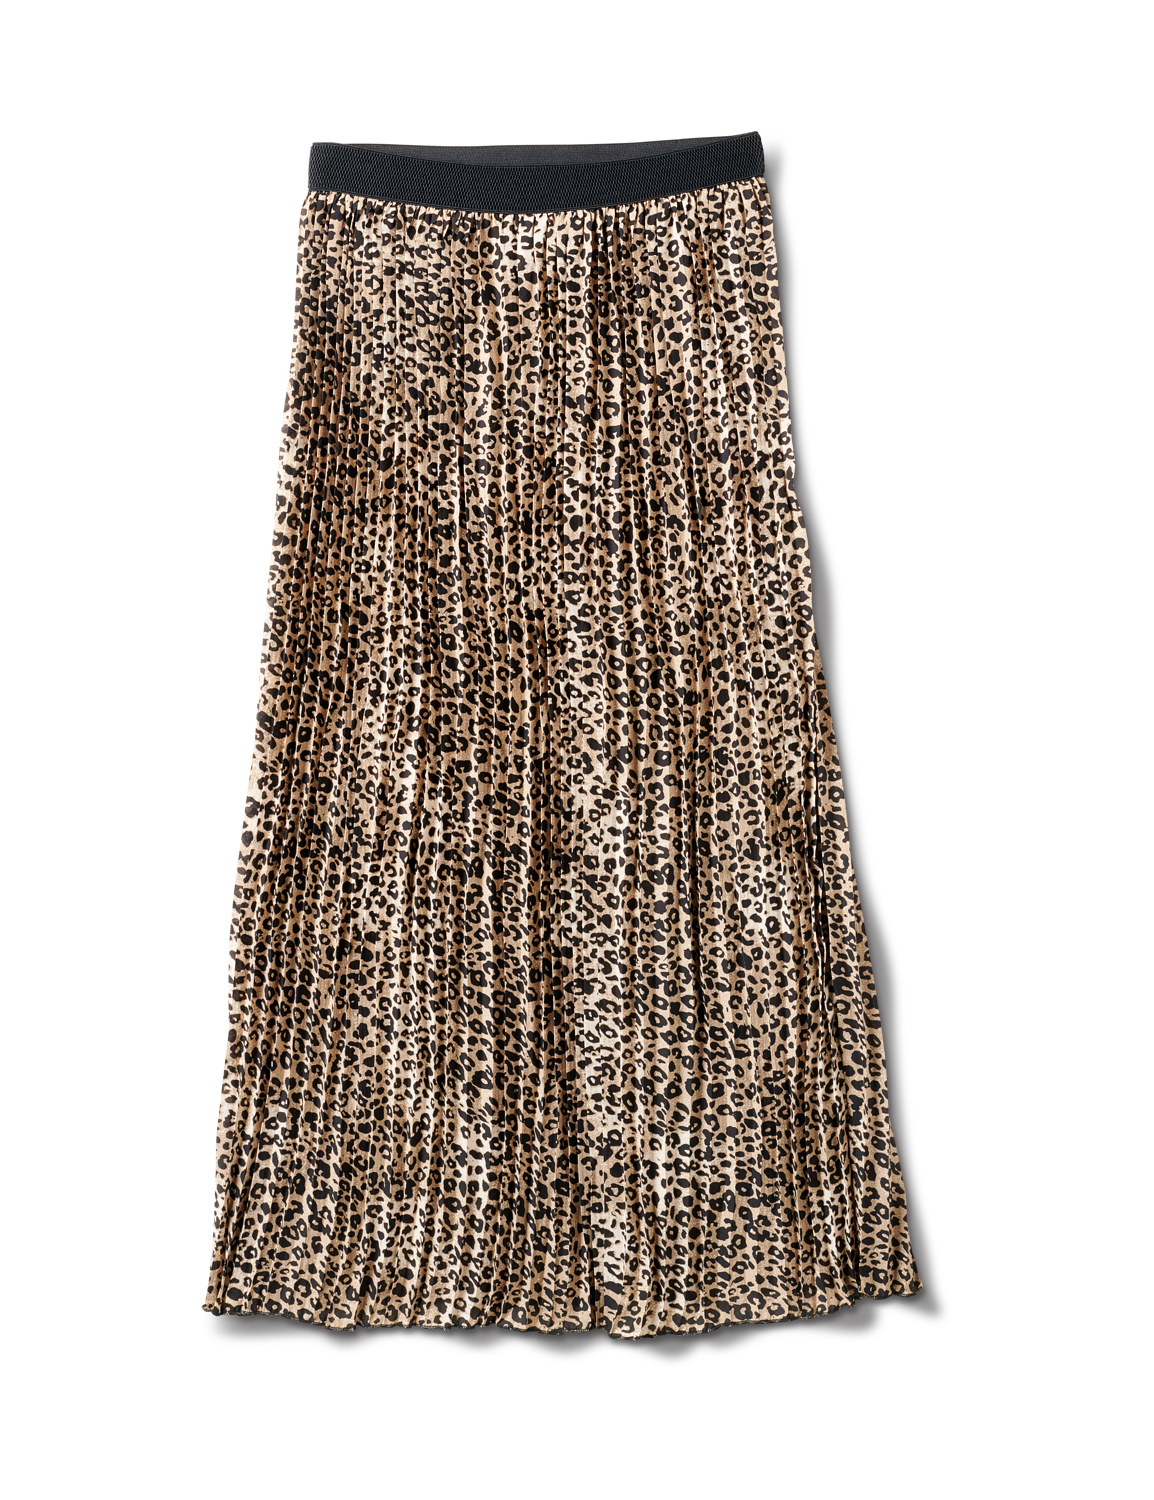 Printed Pleated Skirt With Contrast Elastic Waistband -Skin - Front